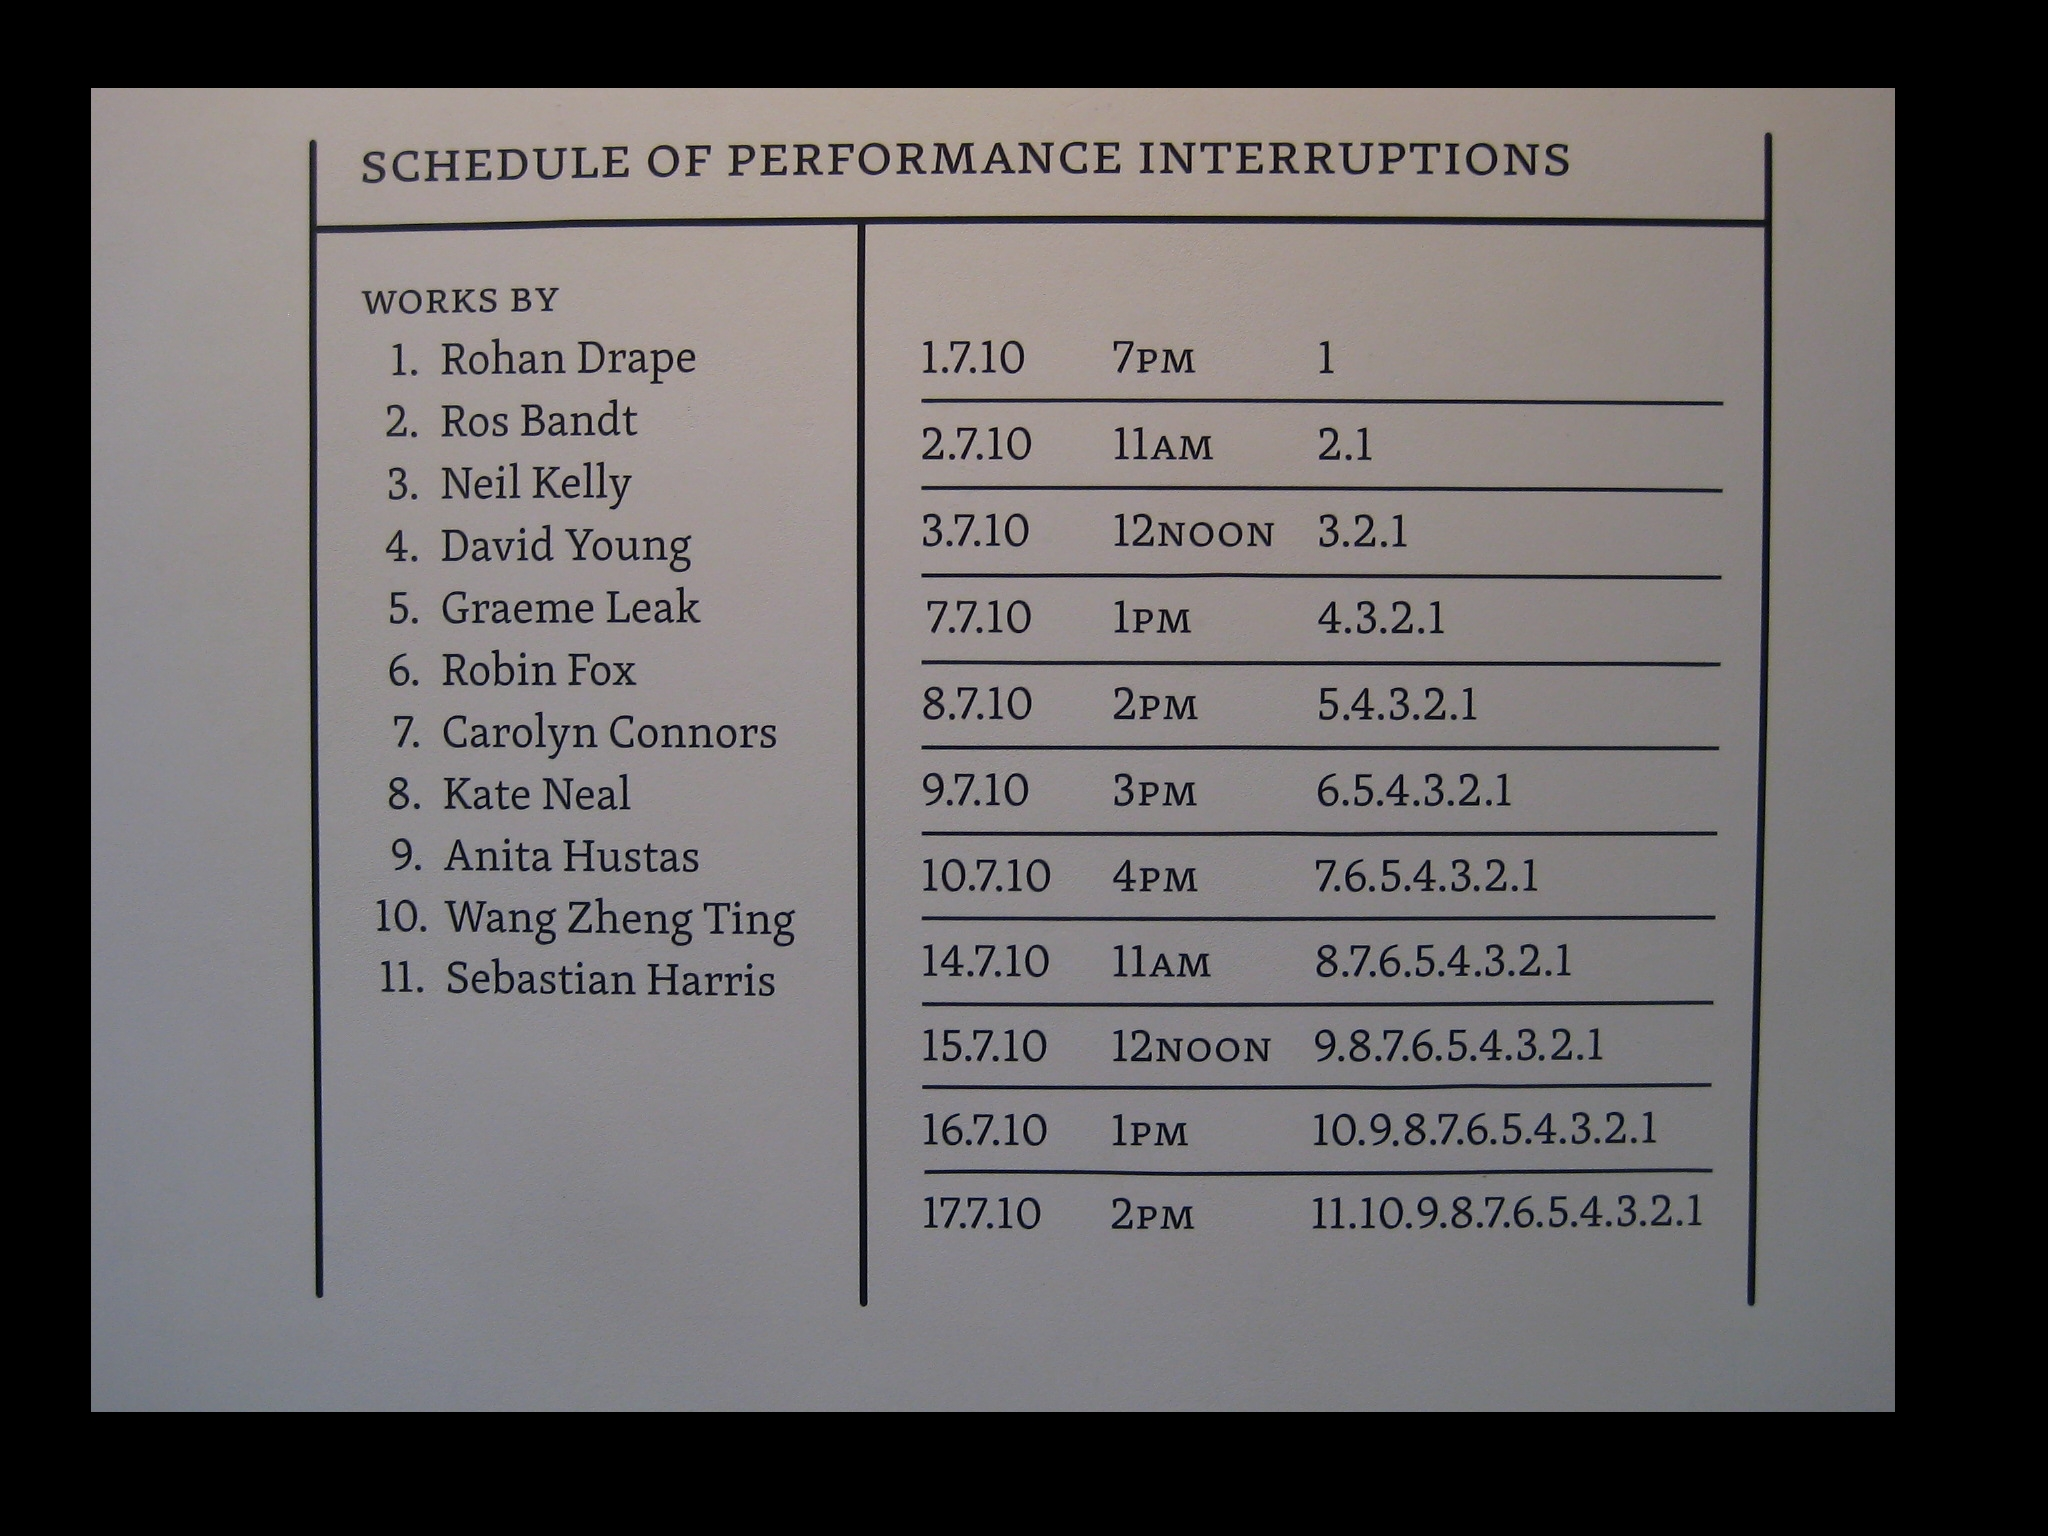 constellation schedule of performance interruptions